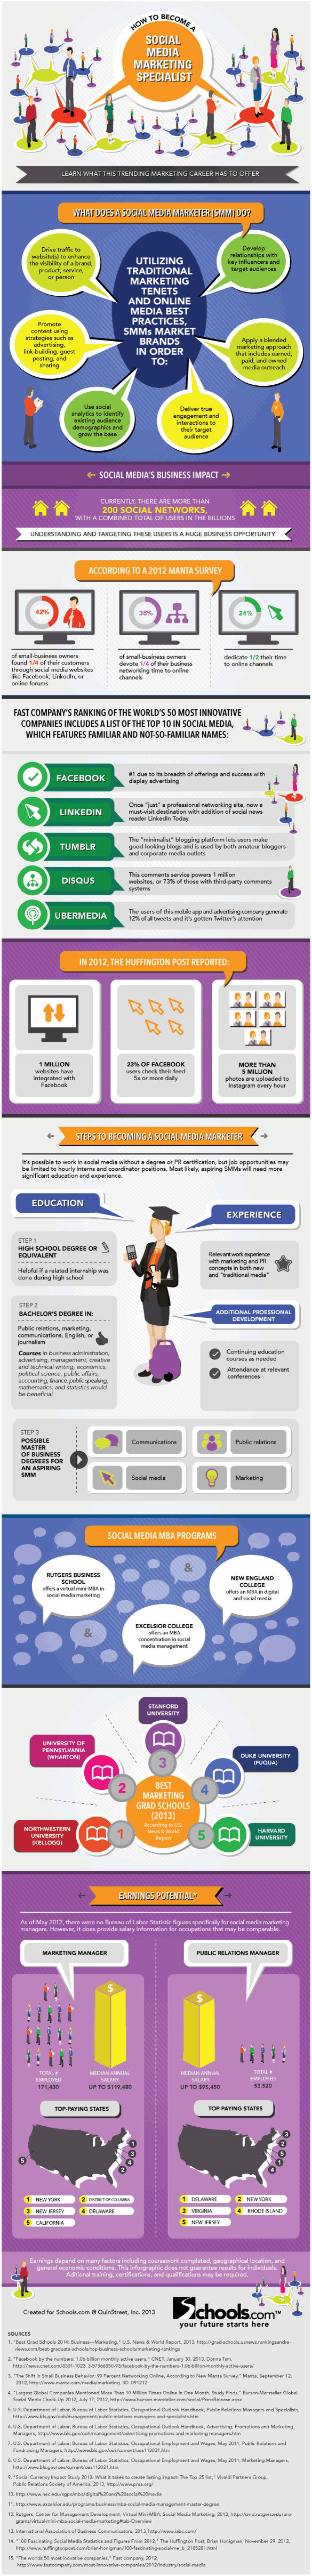 How to Become a Social Media Marketing Expert #SMM #Infographic